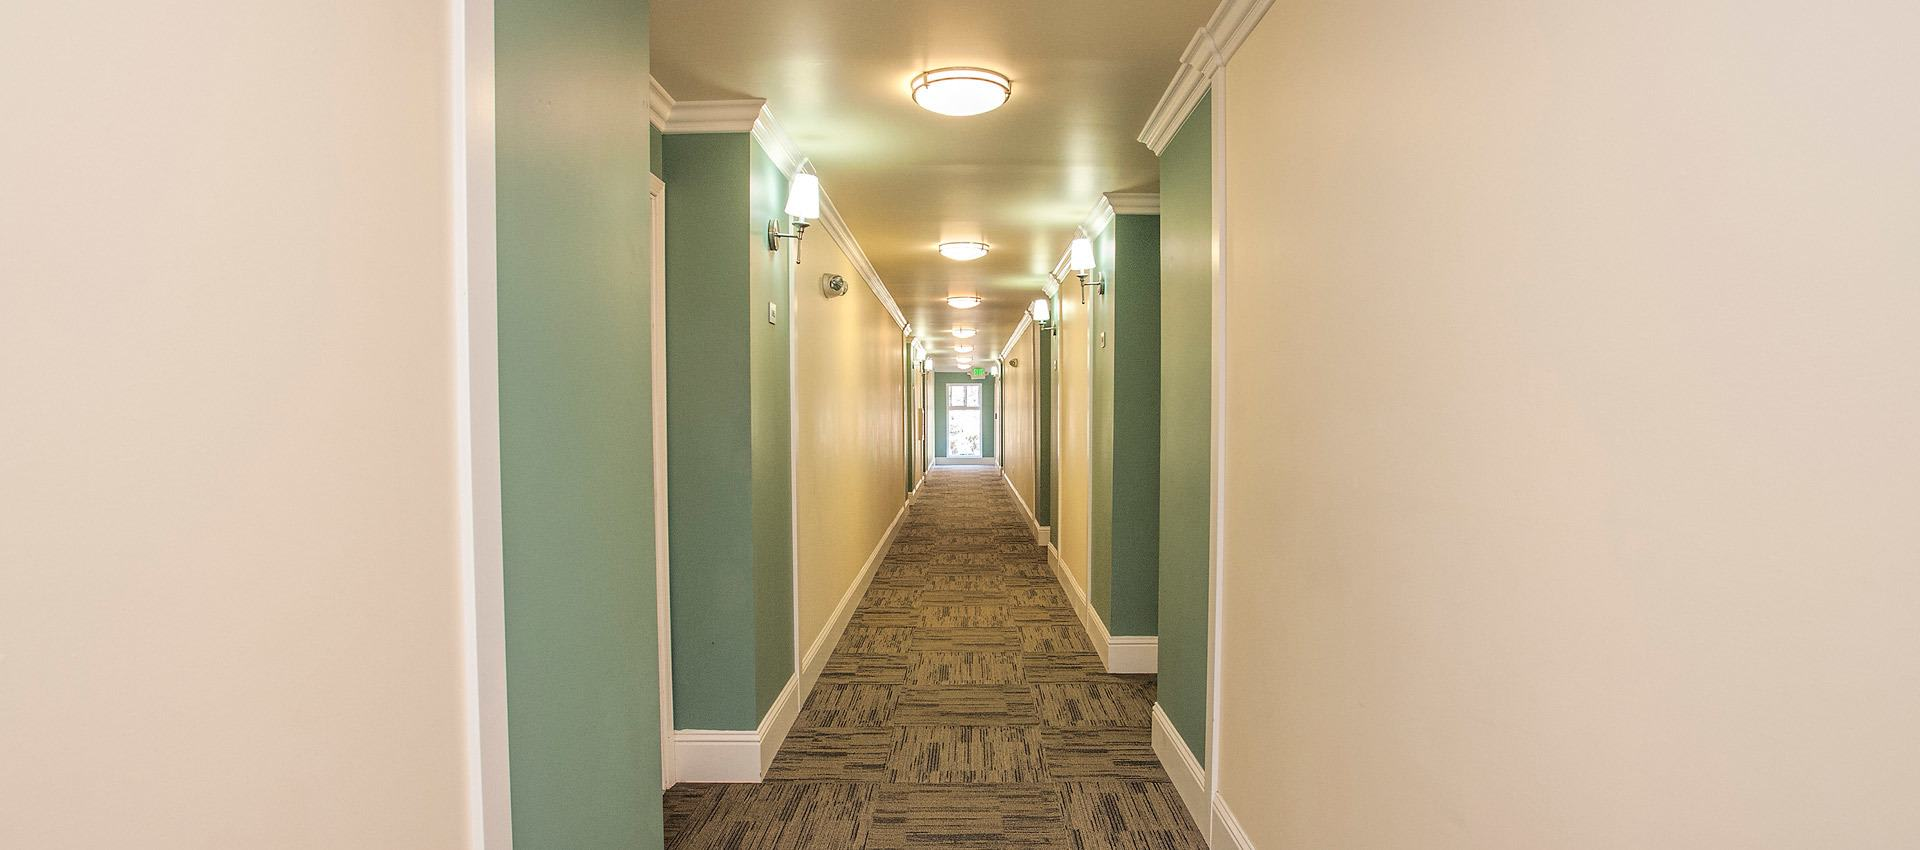 Hallway at Regency Plaza Apartment Homes in Martinez, CA